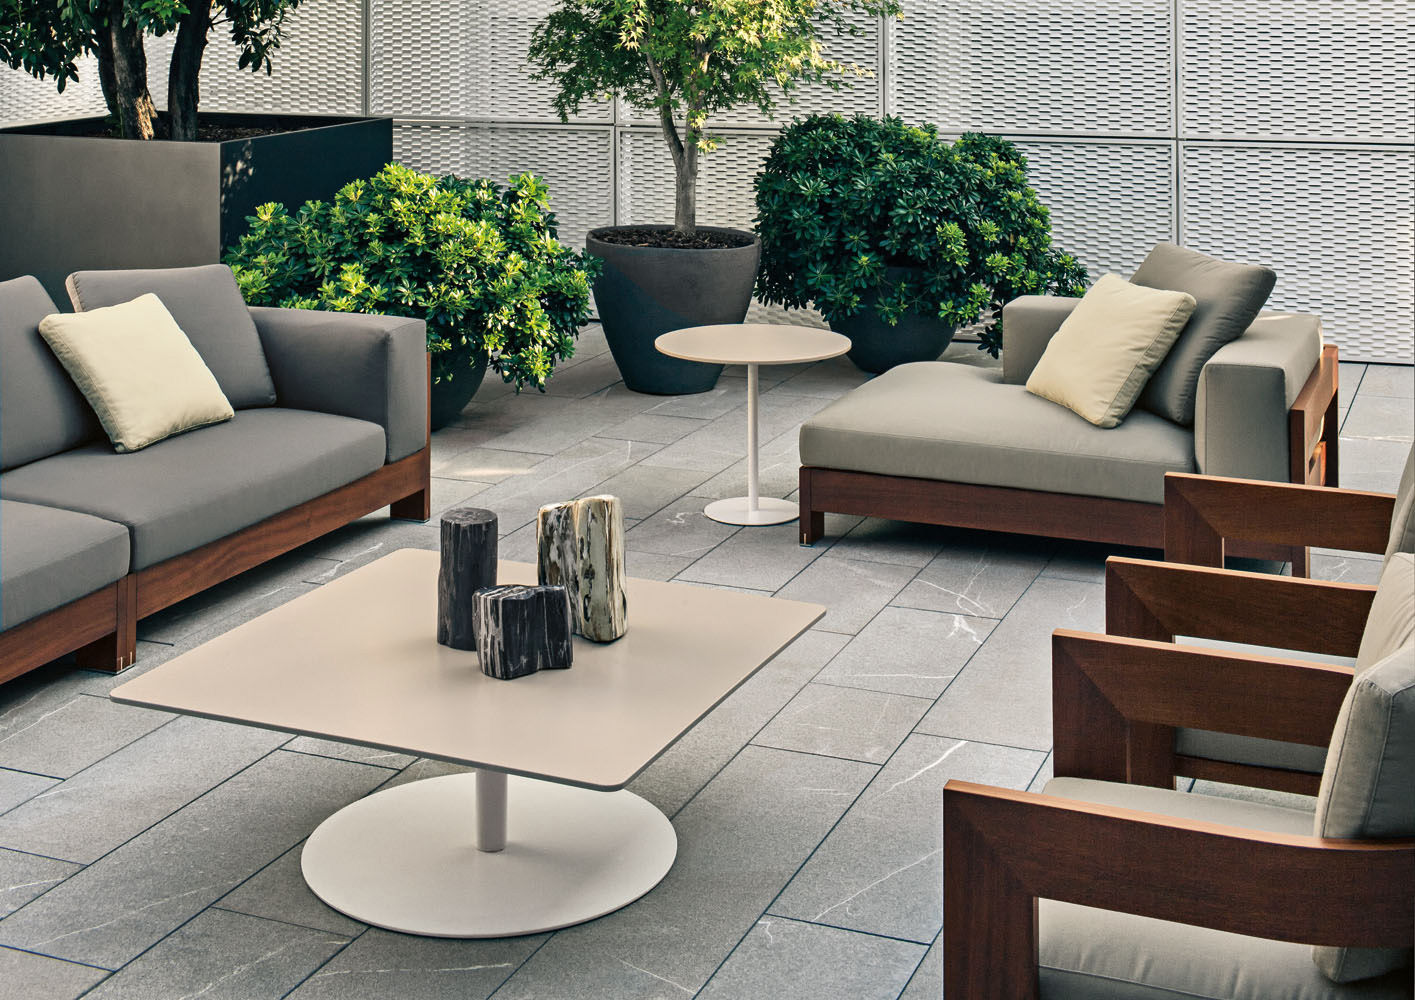 minotti outdoor furniture. 02 Minotti Outdoor Furniture